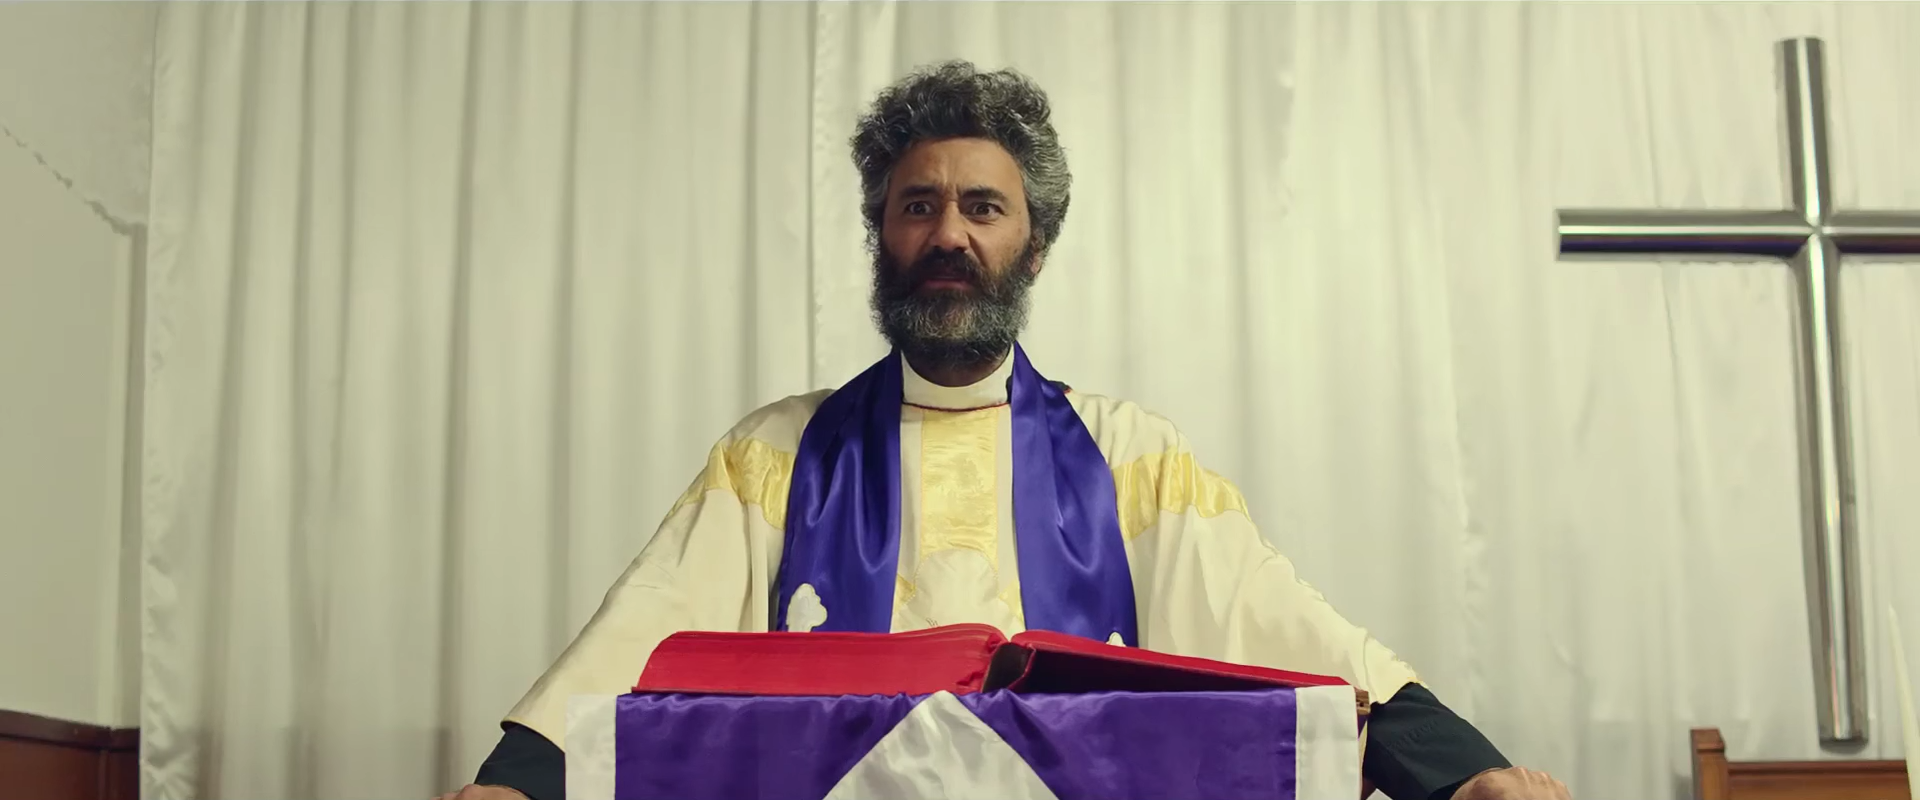 Read the best answers from Taika Waititi's Reddit AMA